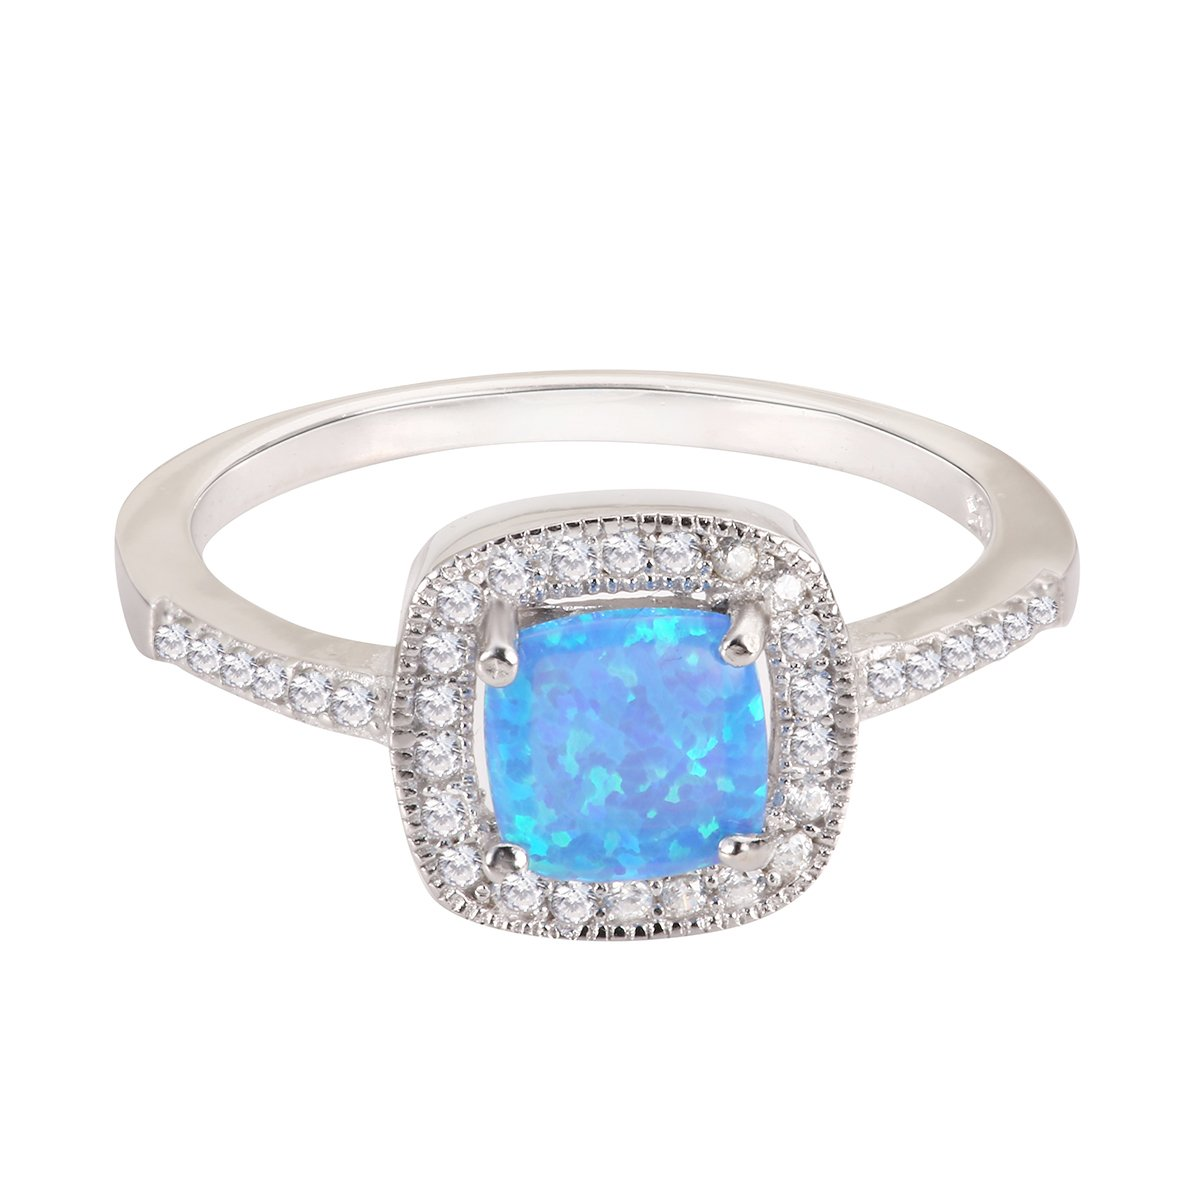 CloseoutWarehouse Blue Simulated Opal Princess Halo Ring Sterling Silver Size 6 by CloseoutWarehouse (Image #4)